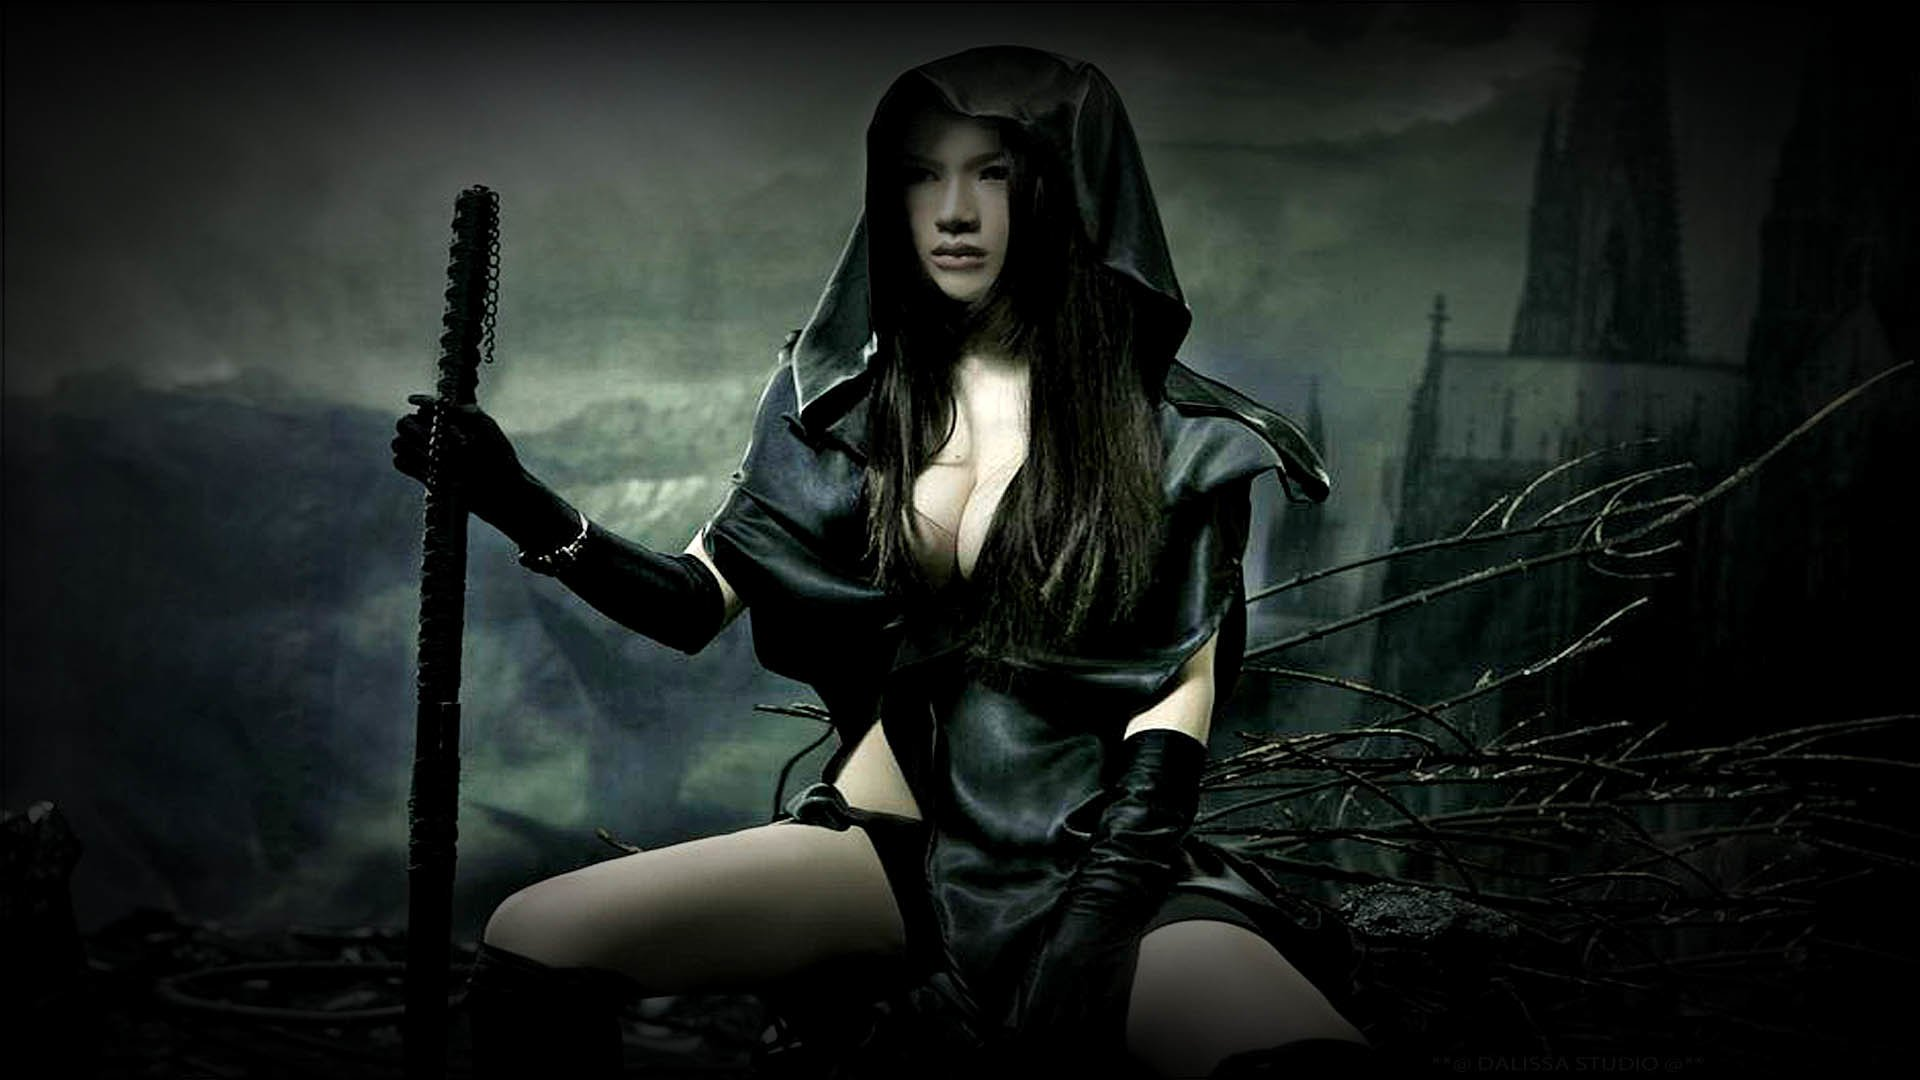 Fantasy - Women Warrior  Cleacage Beautiful Sword Warrior Gothic Dark Wallpaper